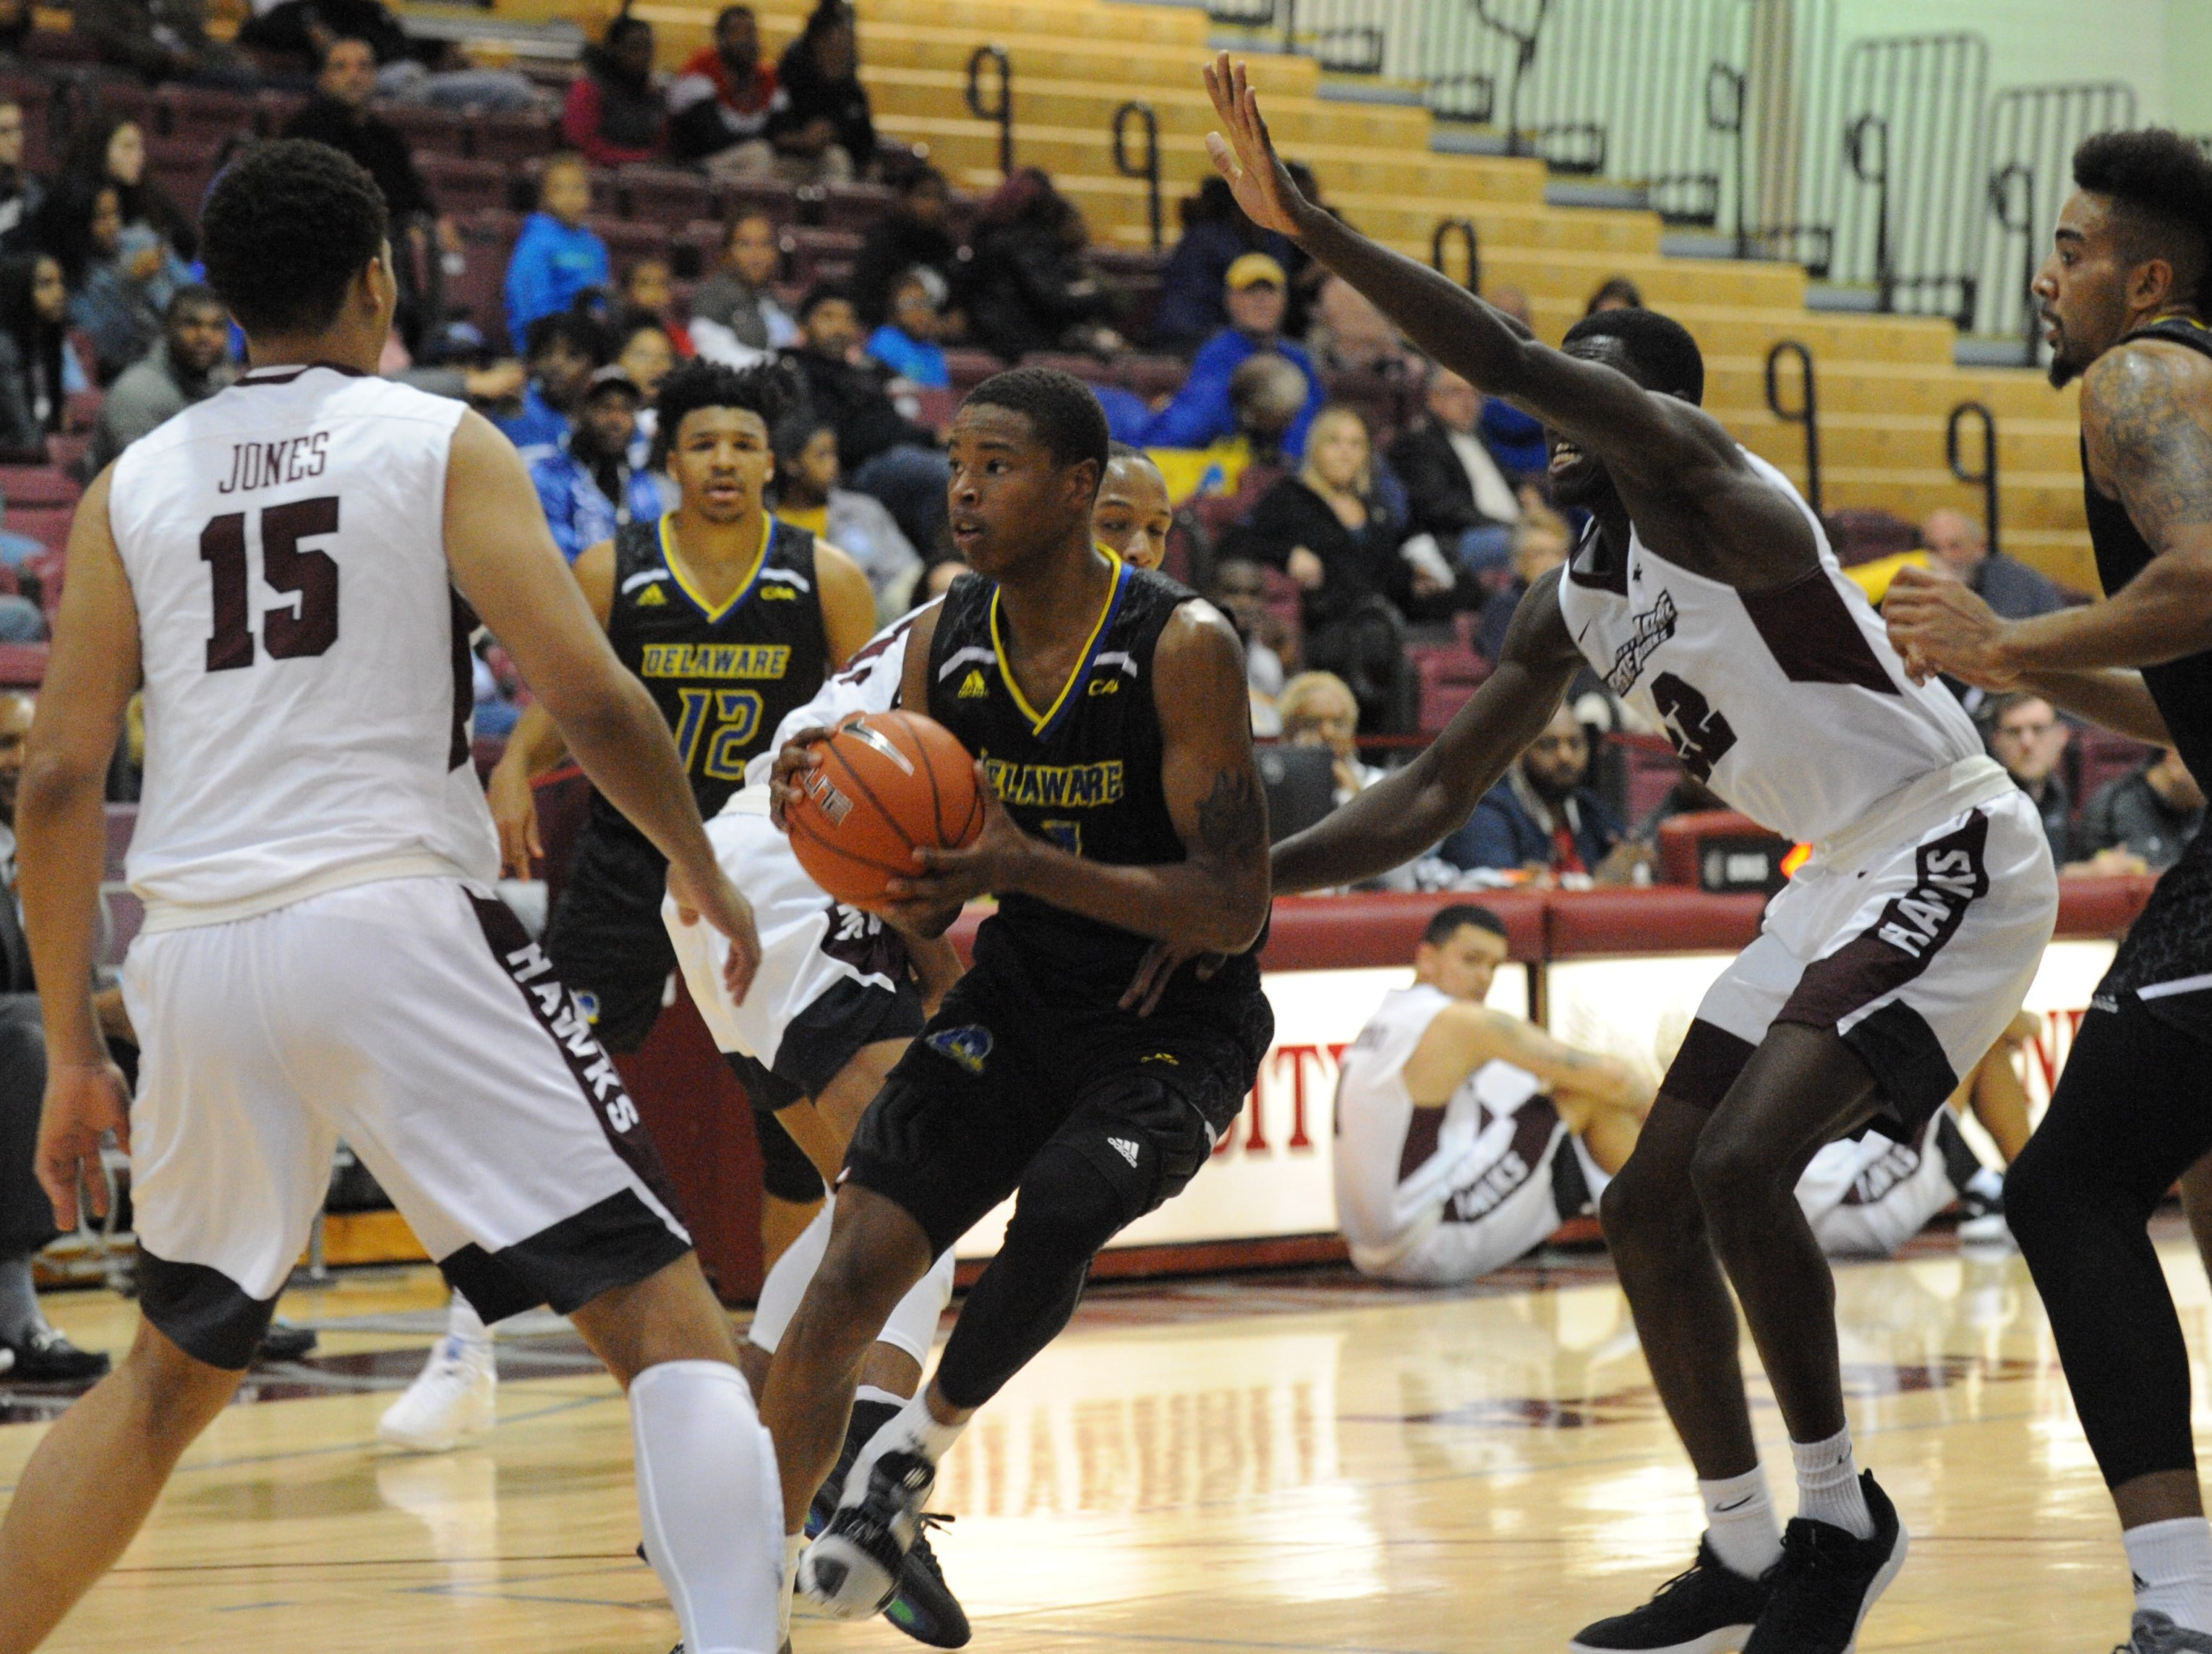 University of Delaware guard Kevin Anderson dribbles between traffic against the University of Maryland Eastern Shore on Friday, Nov. 30, 2018. The Blue Hens beat the Hawks, 71-62.